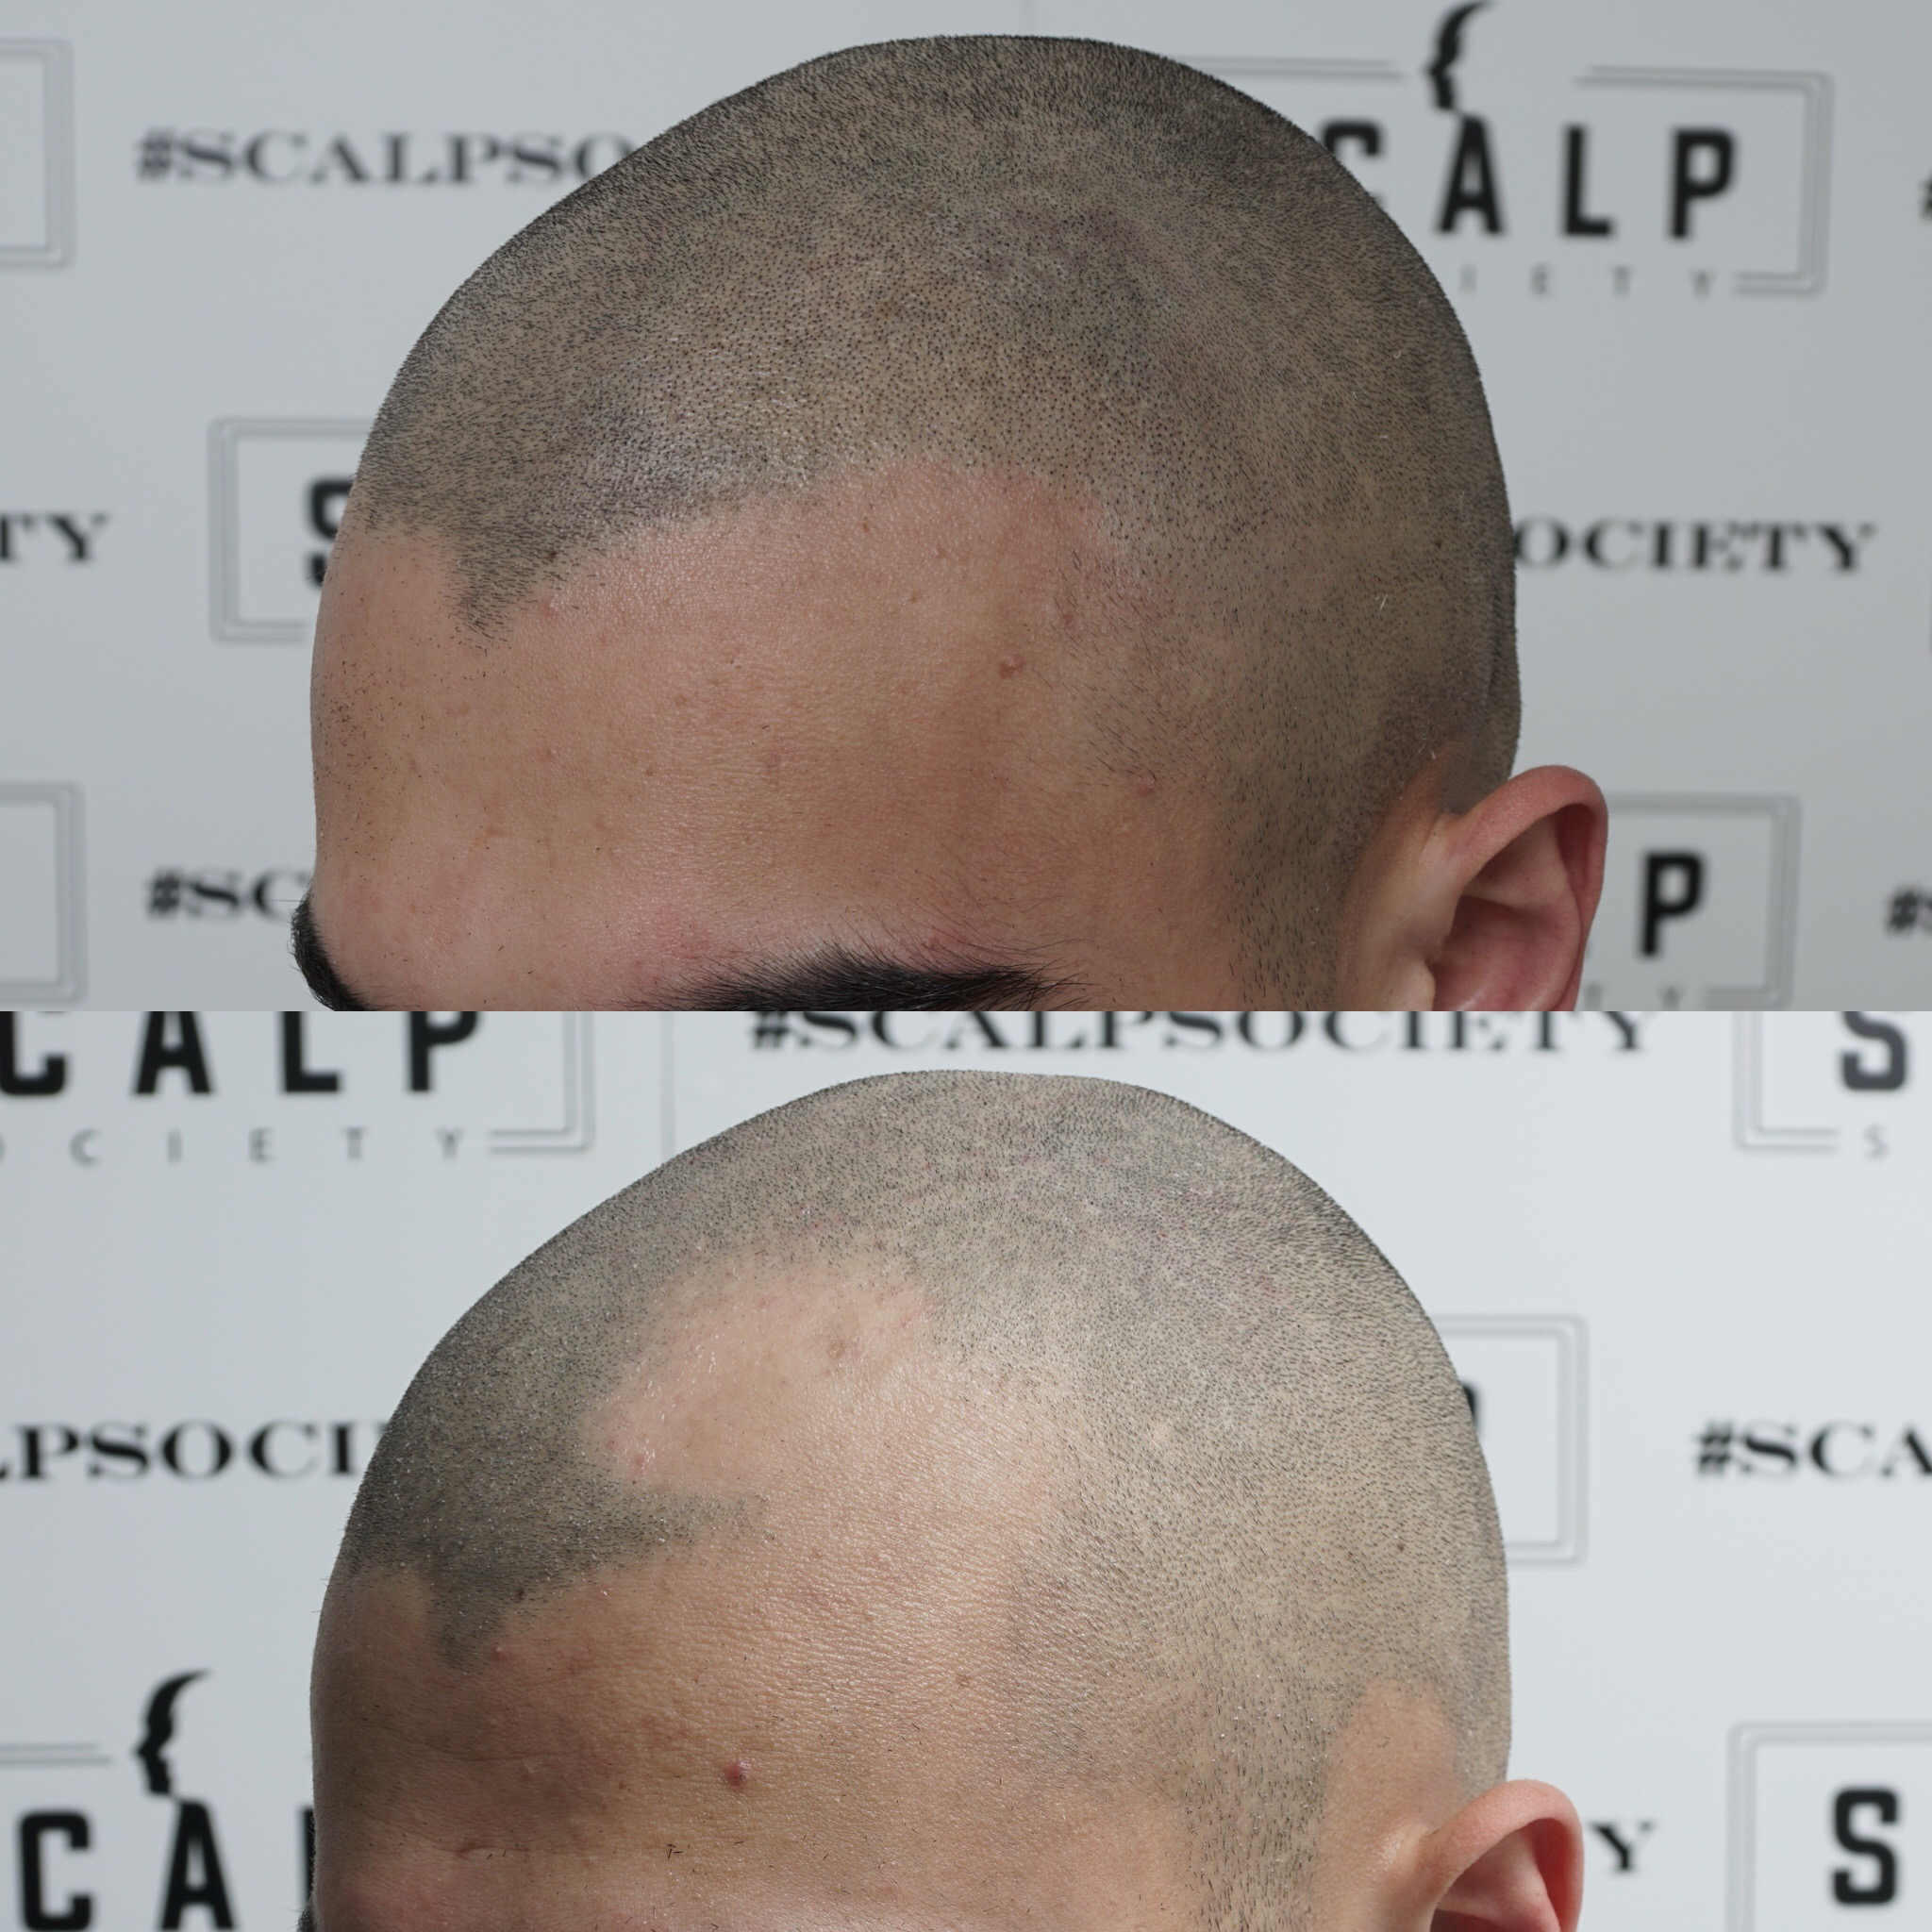 Male 25. This client has Alopecia and came in looking to get micropigmentation done for the front and back. This is his second session of micropigmentation, even though it looks good, we will do a third to make it better.